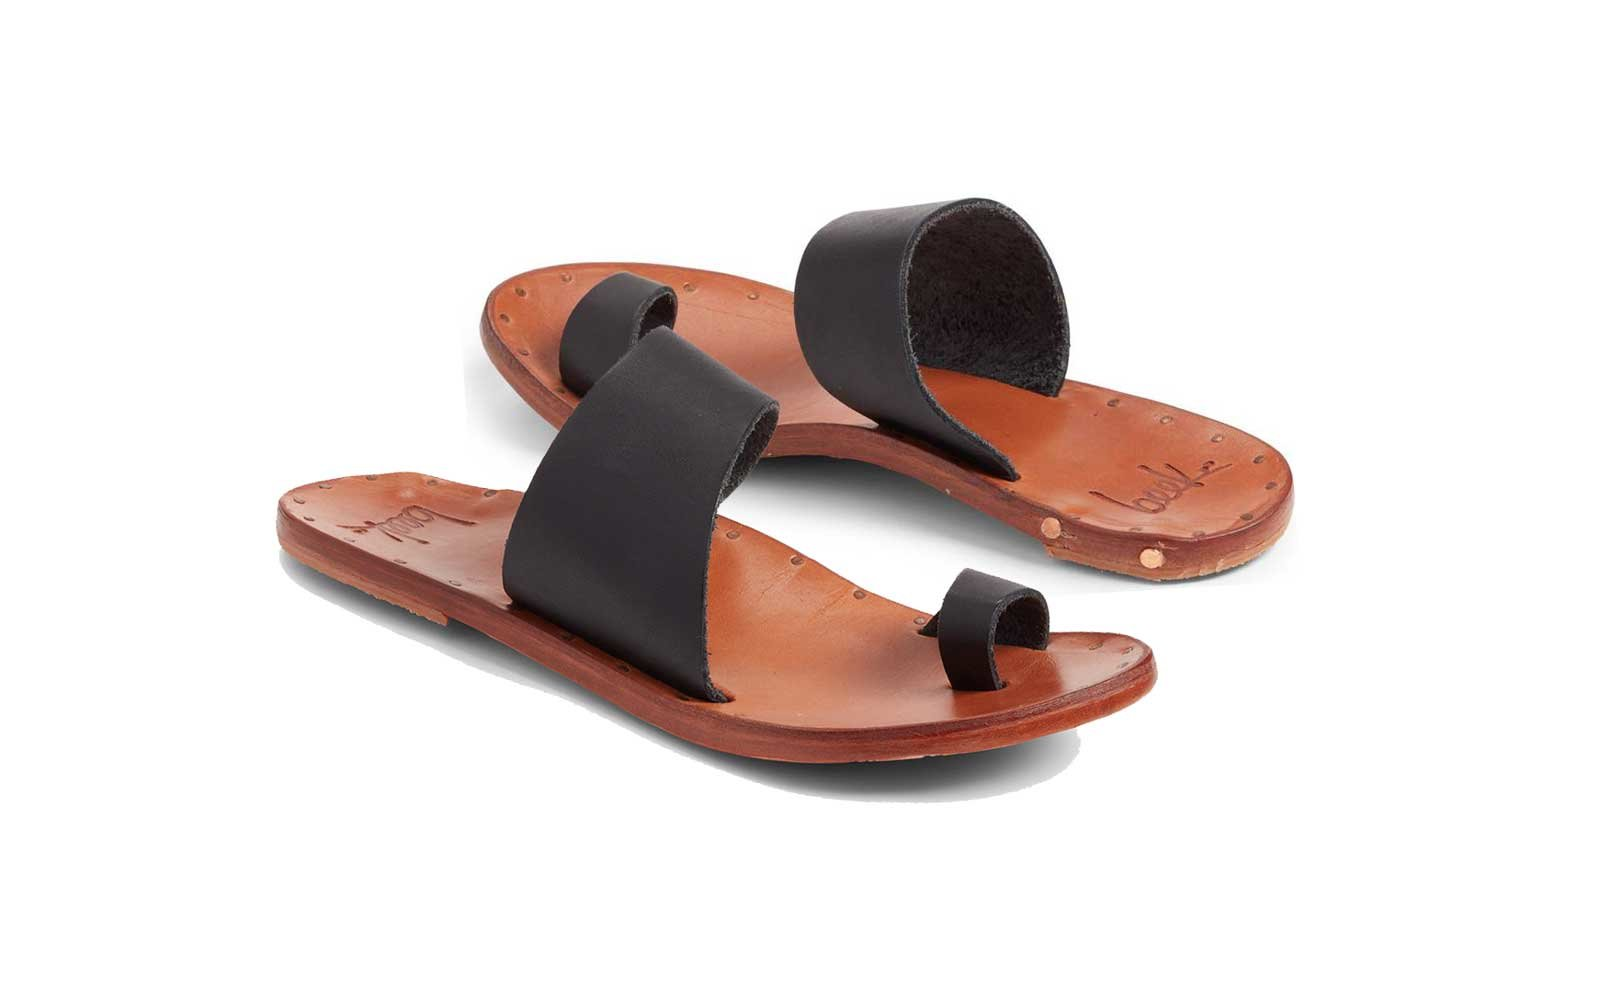 6d888596add2e8 Supported Slides  Beek  Finch  Sandal. beek womens comfortable walking  sandals. Courtesy of Nordstrom